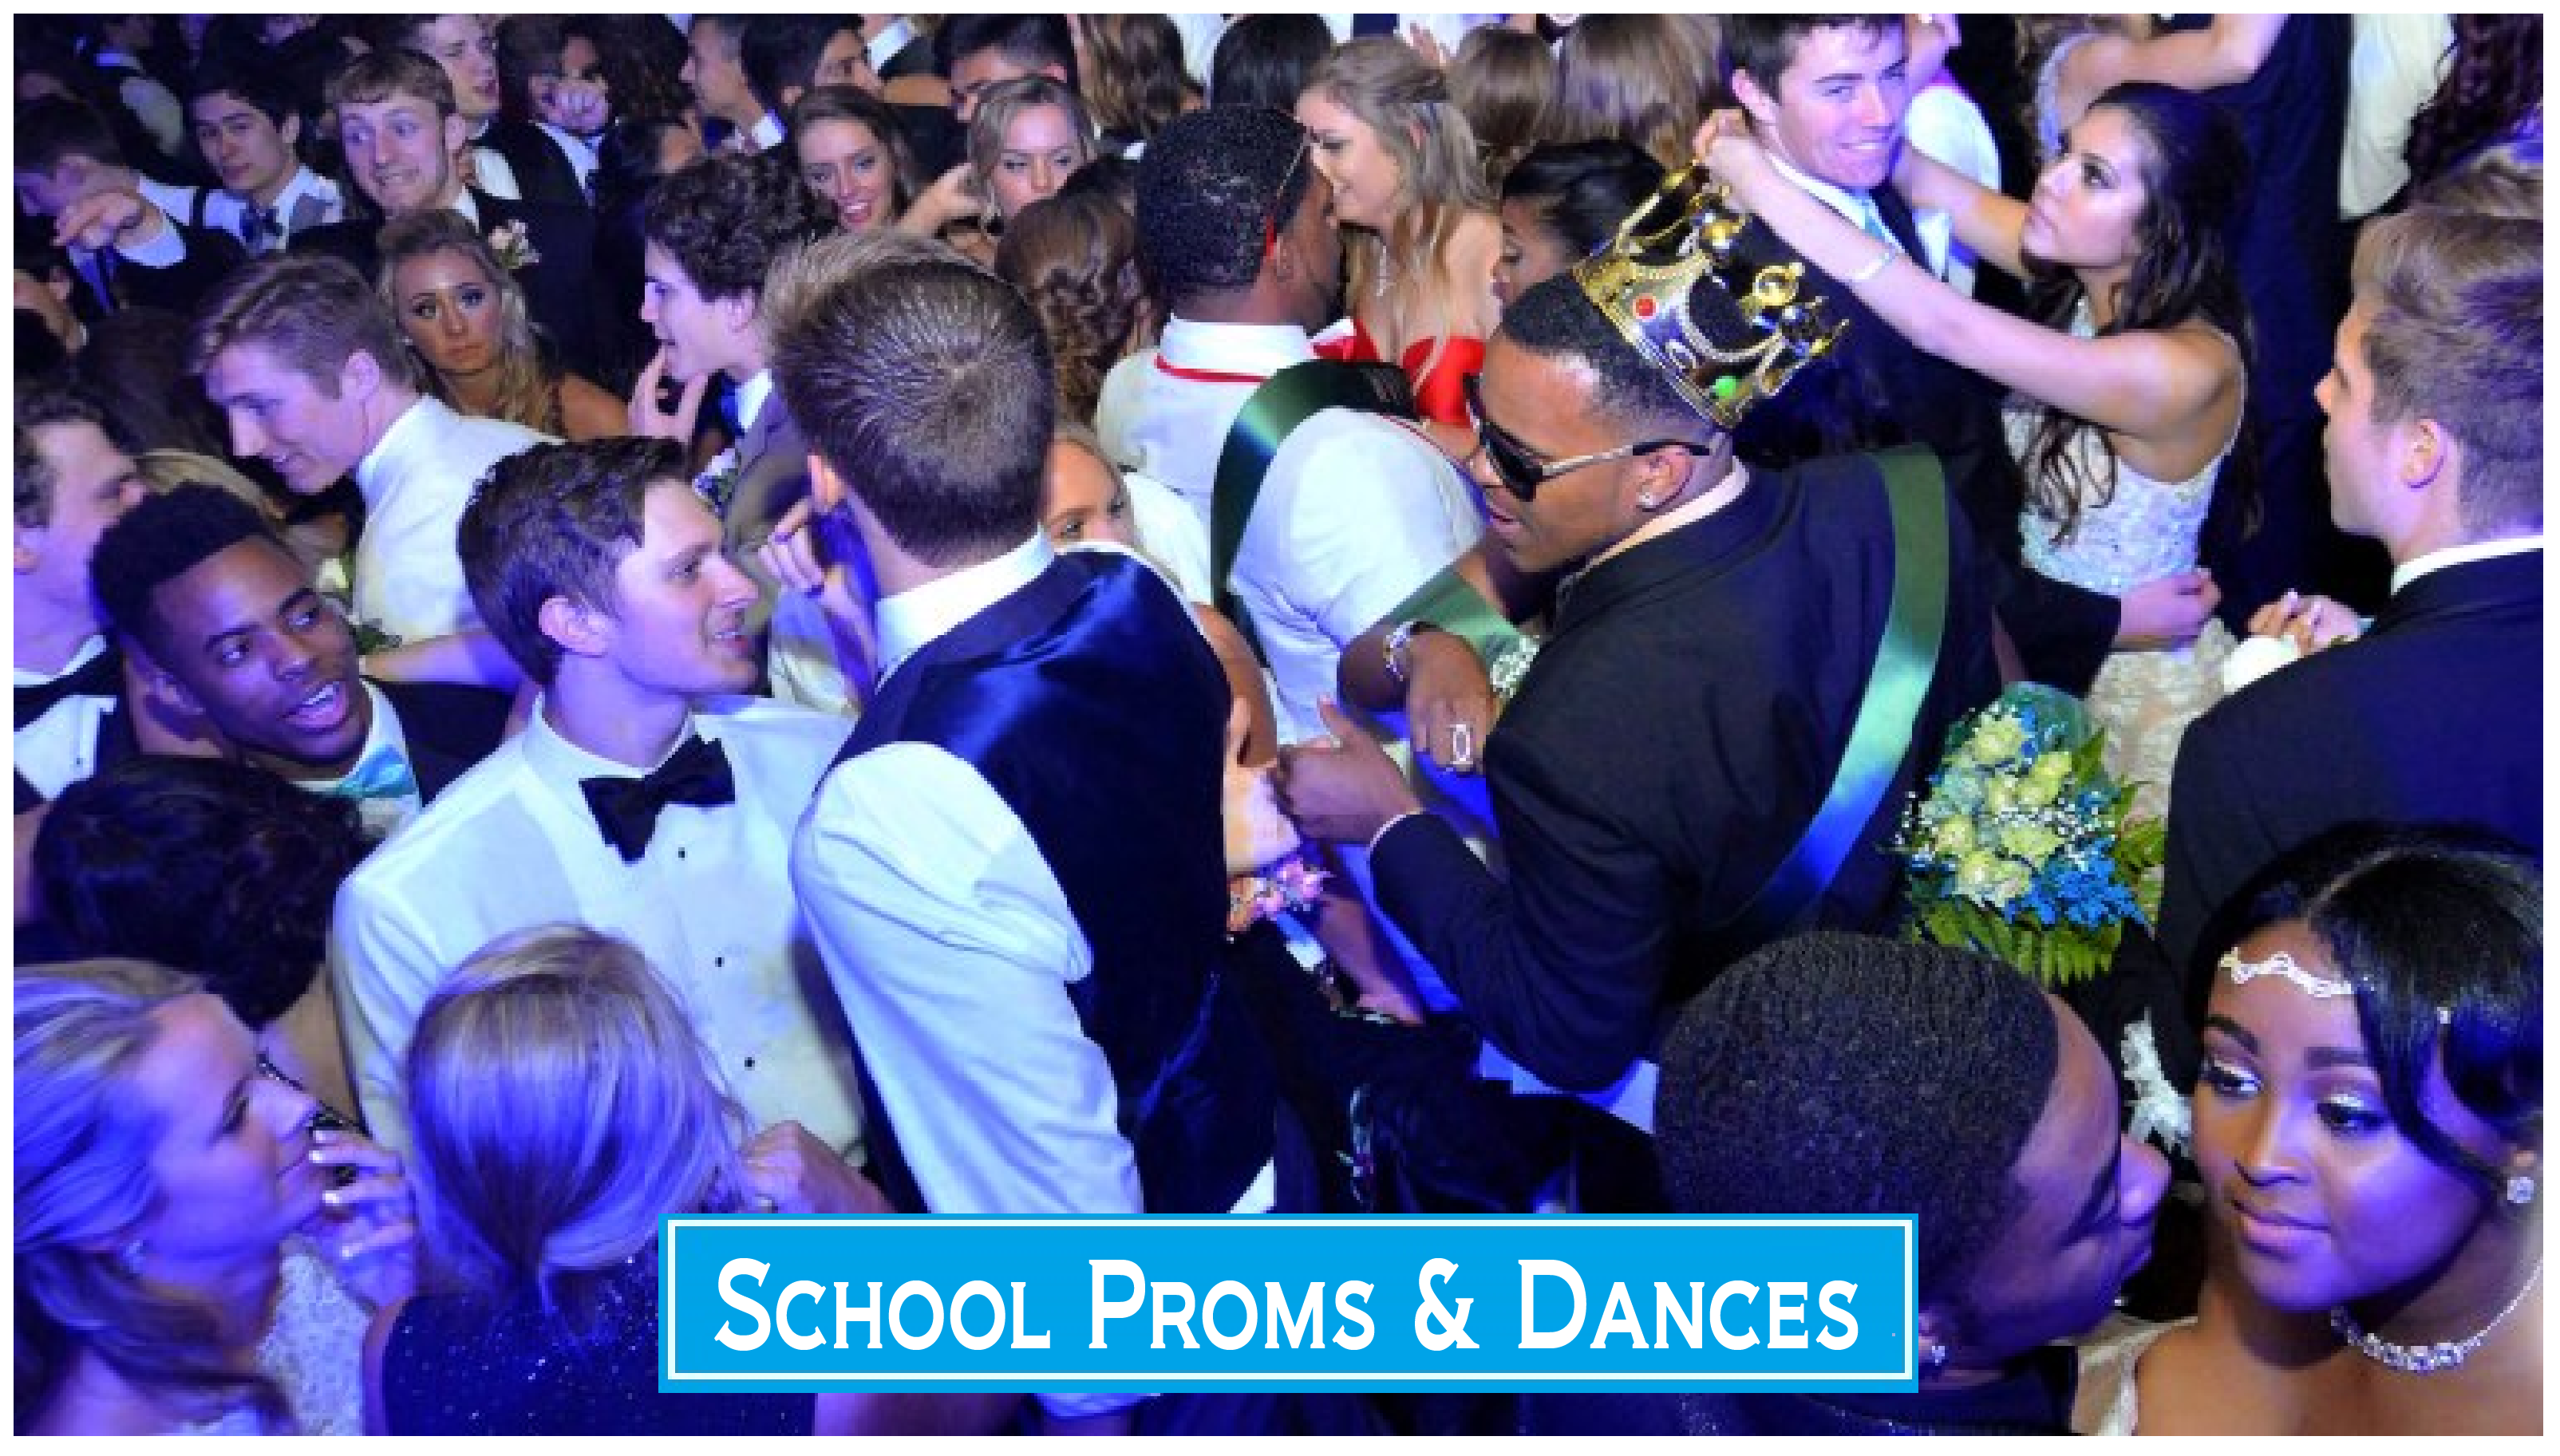 Houston Prom DJ, School Dance in Houston, Houston Homecoming Dance DJ in Houston, High School, Elementary School, Middle School, Junior High School, Fundraiser, Band, Choir, Orchestra, ROTC Banquet